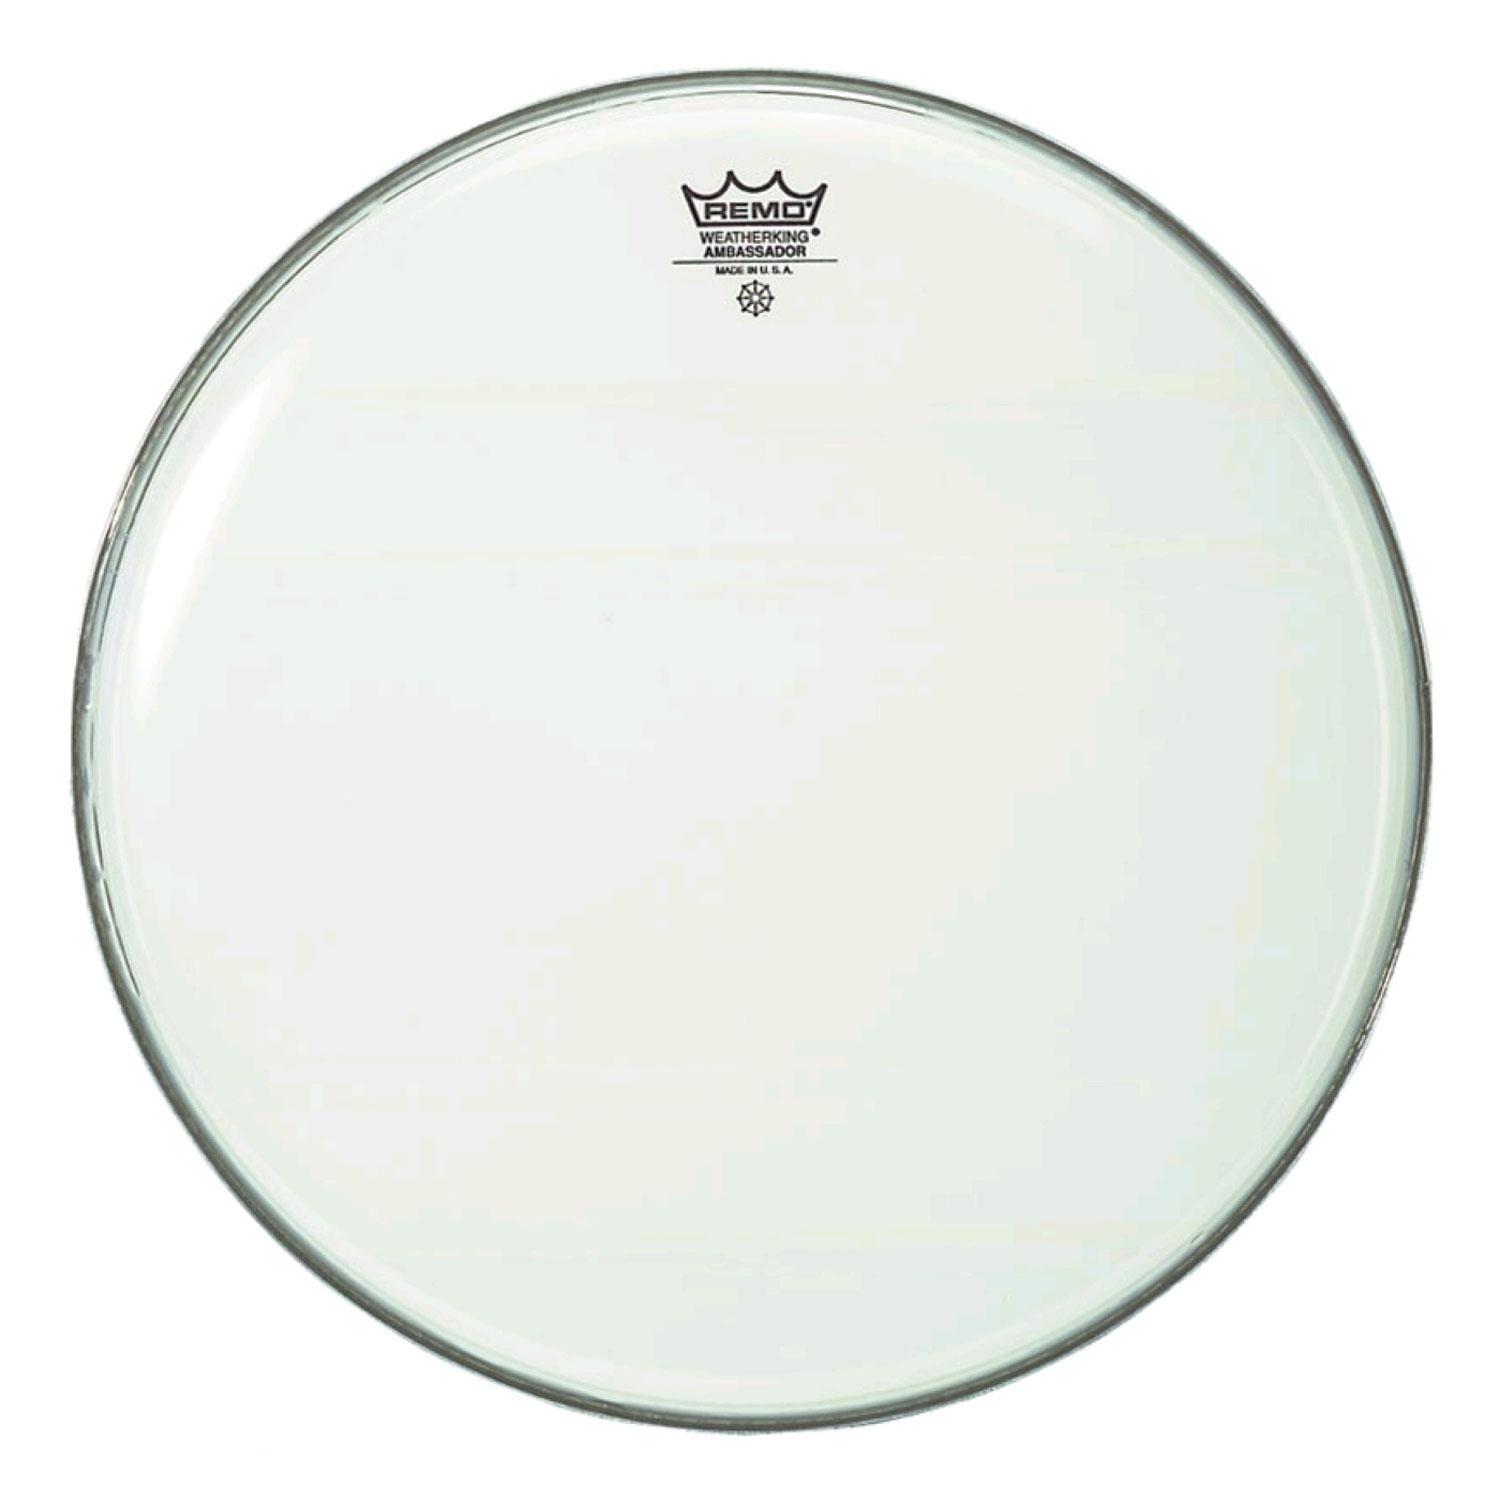 "Remo 8"" Ambassador Smooth White Drum Head"